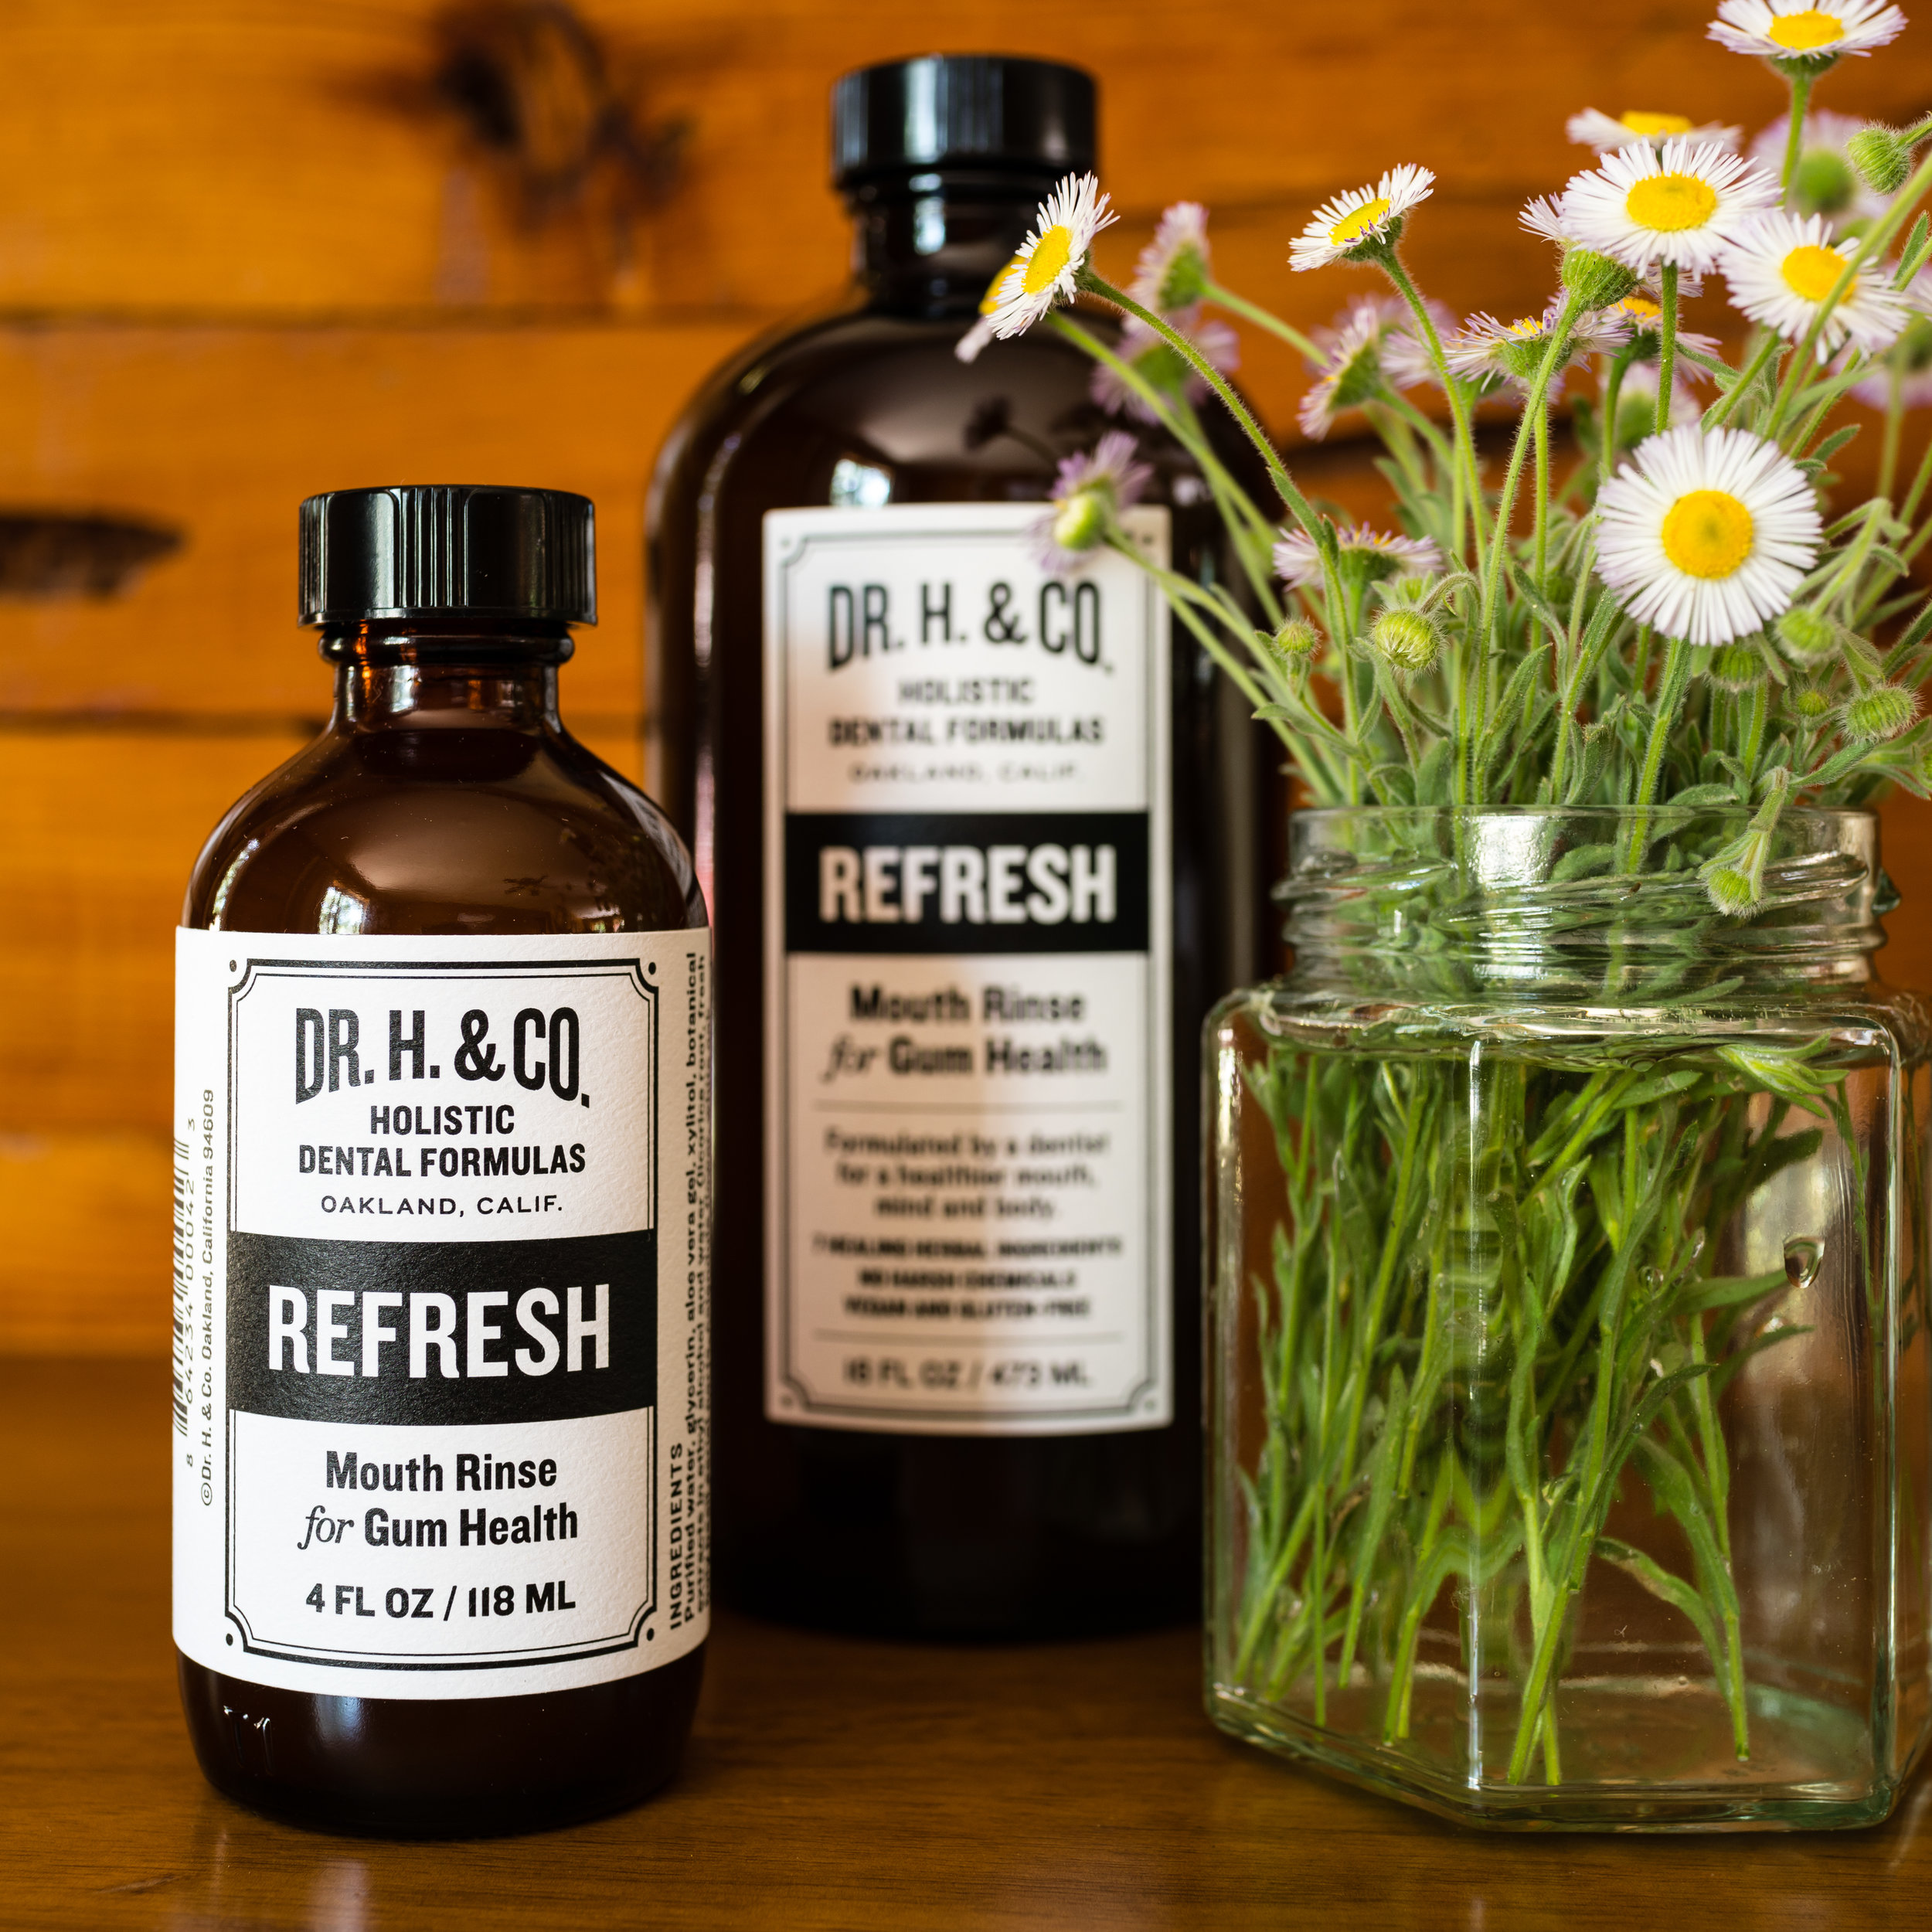 Refresh Mouthwash - All Natural Herbal & Holistic Mouthwash for Healthy Gums & Teeth